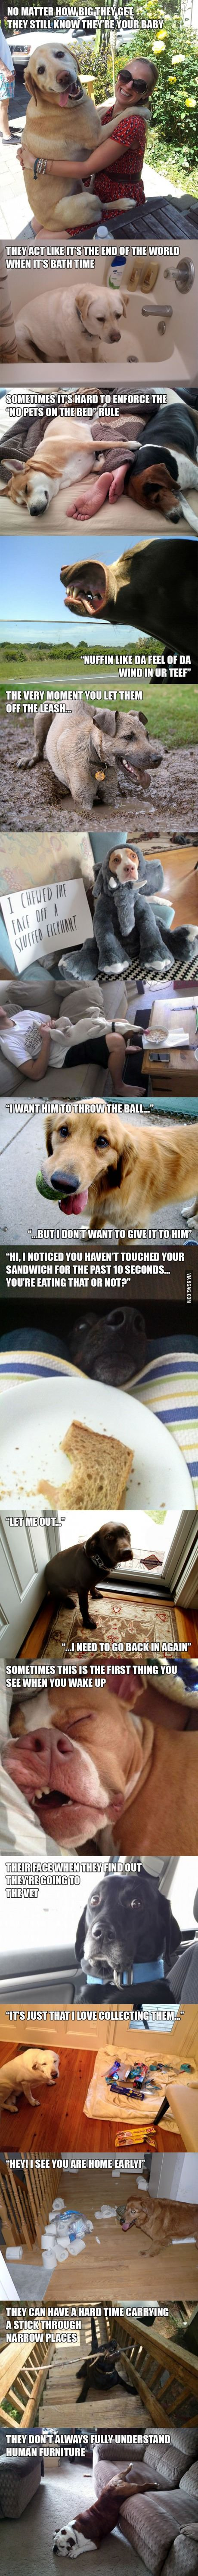 Dog owner struggles... Darla and the boys hit every one of these on the nose